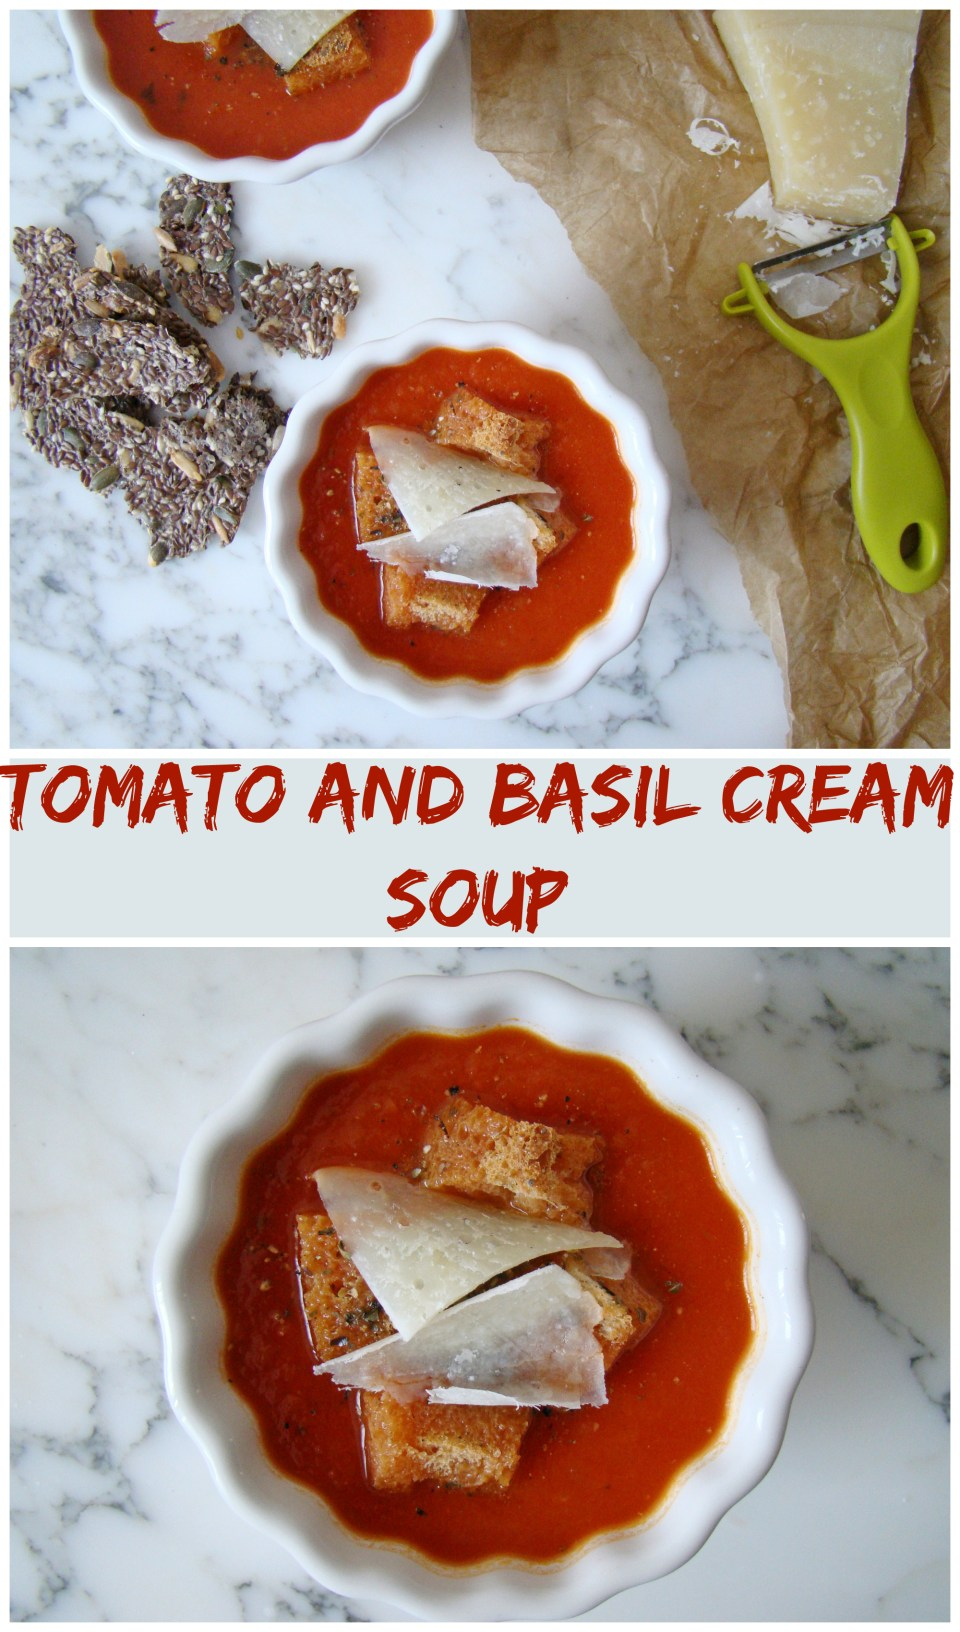 tomato-and-basil-cream-soup